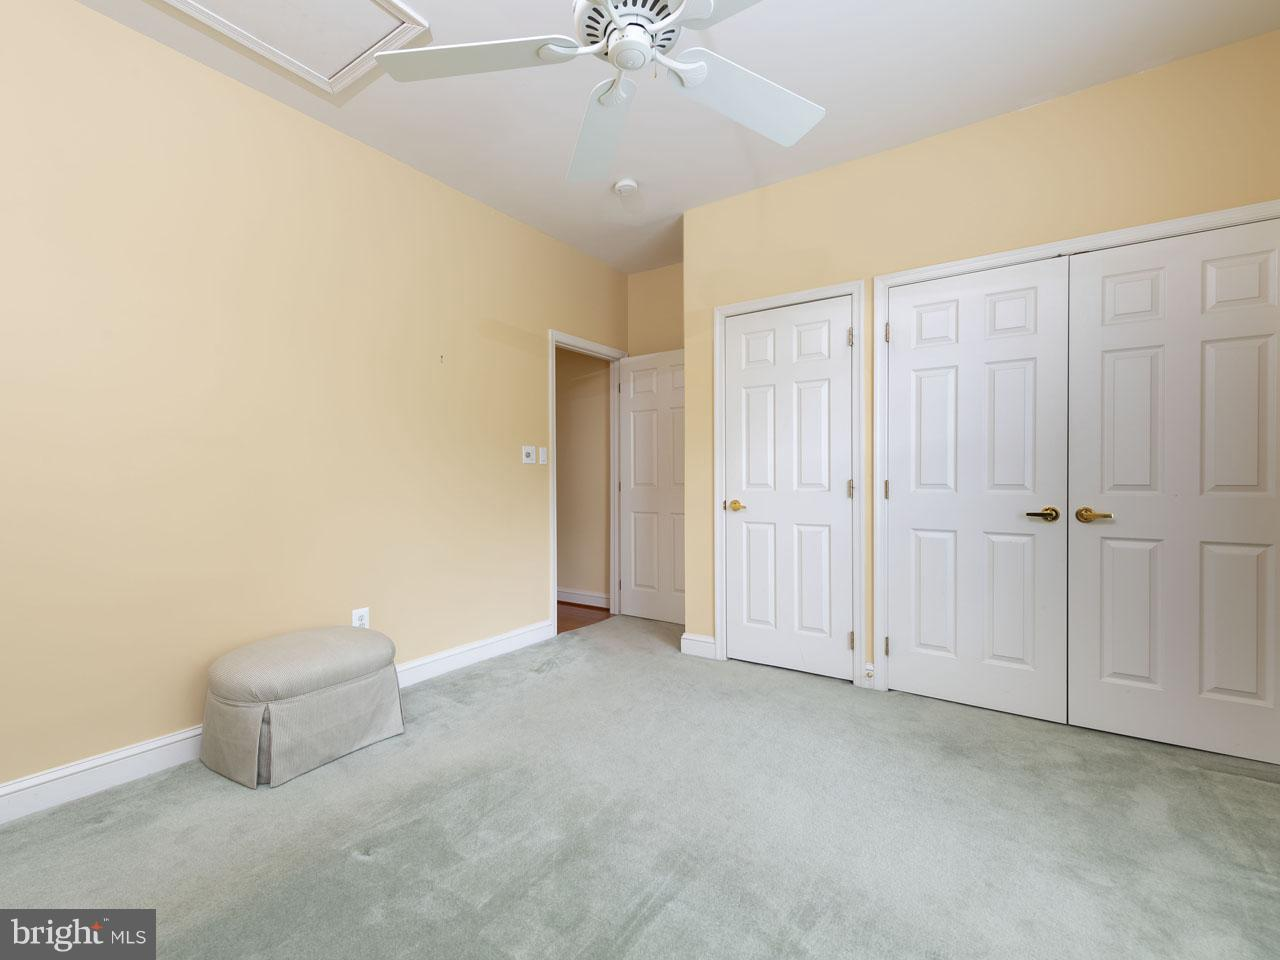 1005040466-300638085563-2021-07-22-06-45-08        Gainesville Delaware Real Estate For Sale   MLS# 1005040466  - Best of Northern Virginia